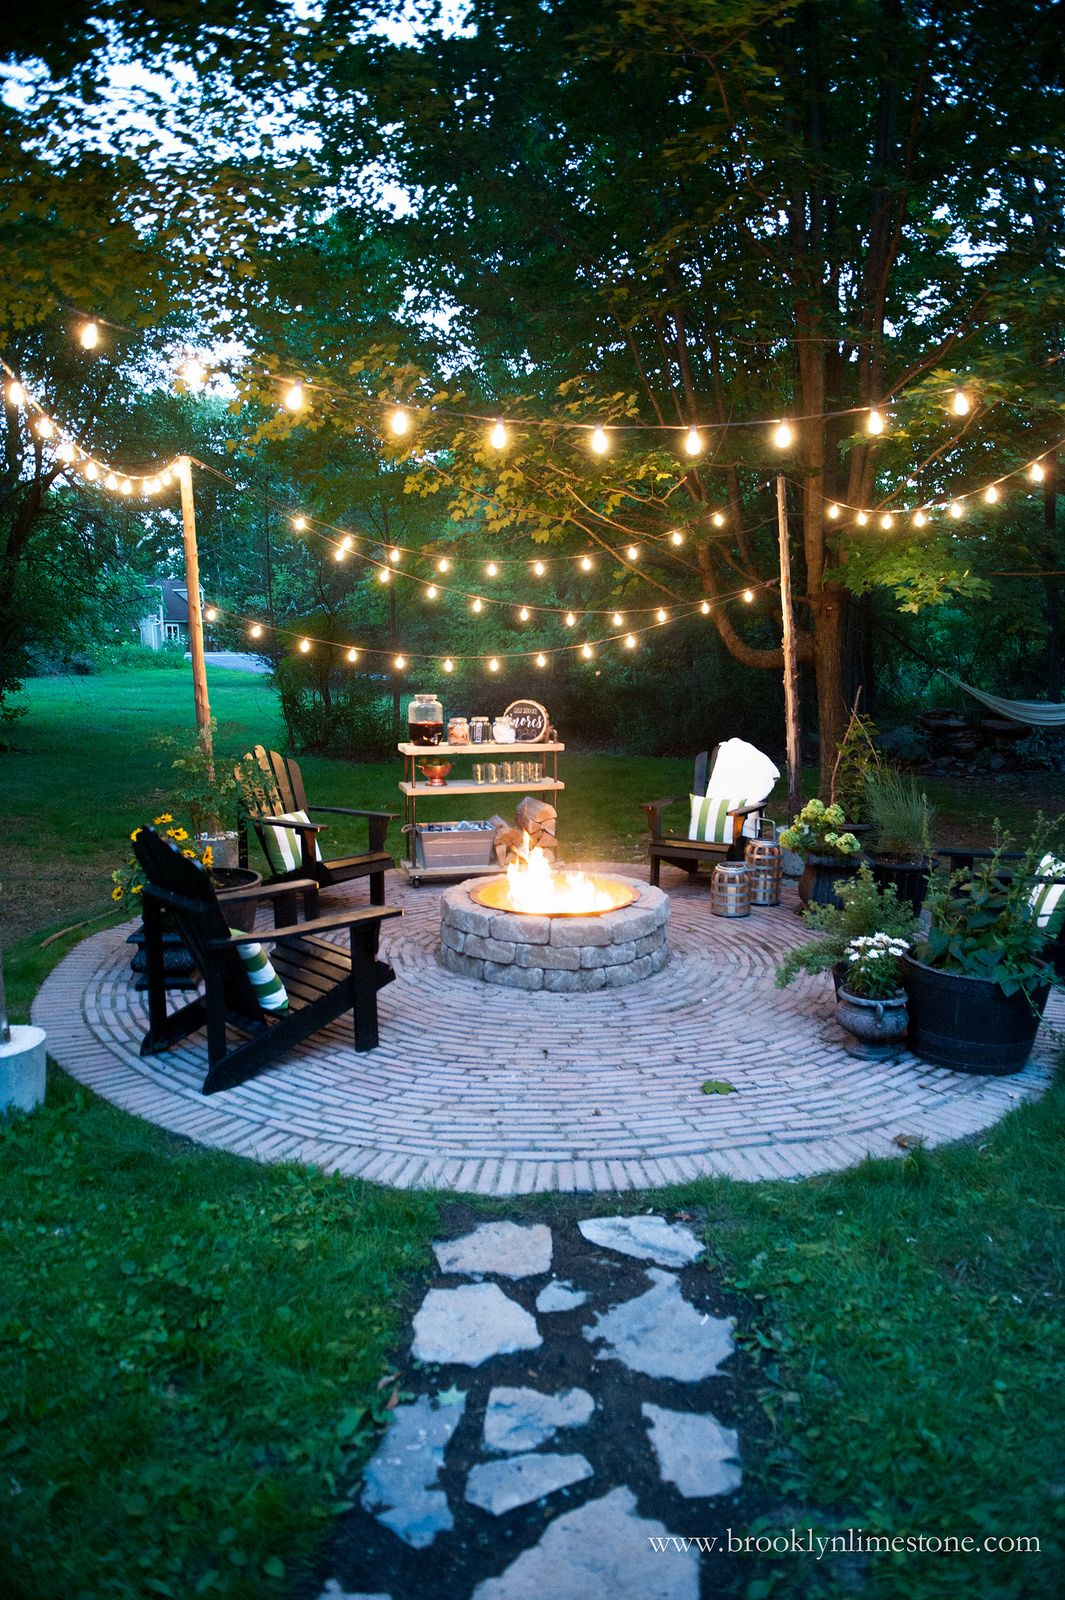 18 Fire Pit Ideas For Your Backyard Home Decor Ideas Fire Pit regarding 14 Awesome Ways How to Make Backyard Firepit Ideas